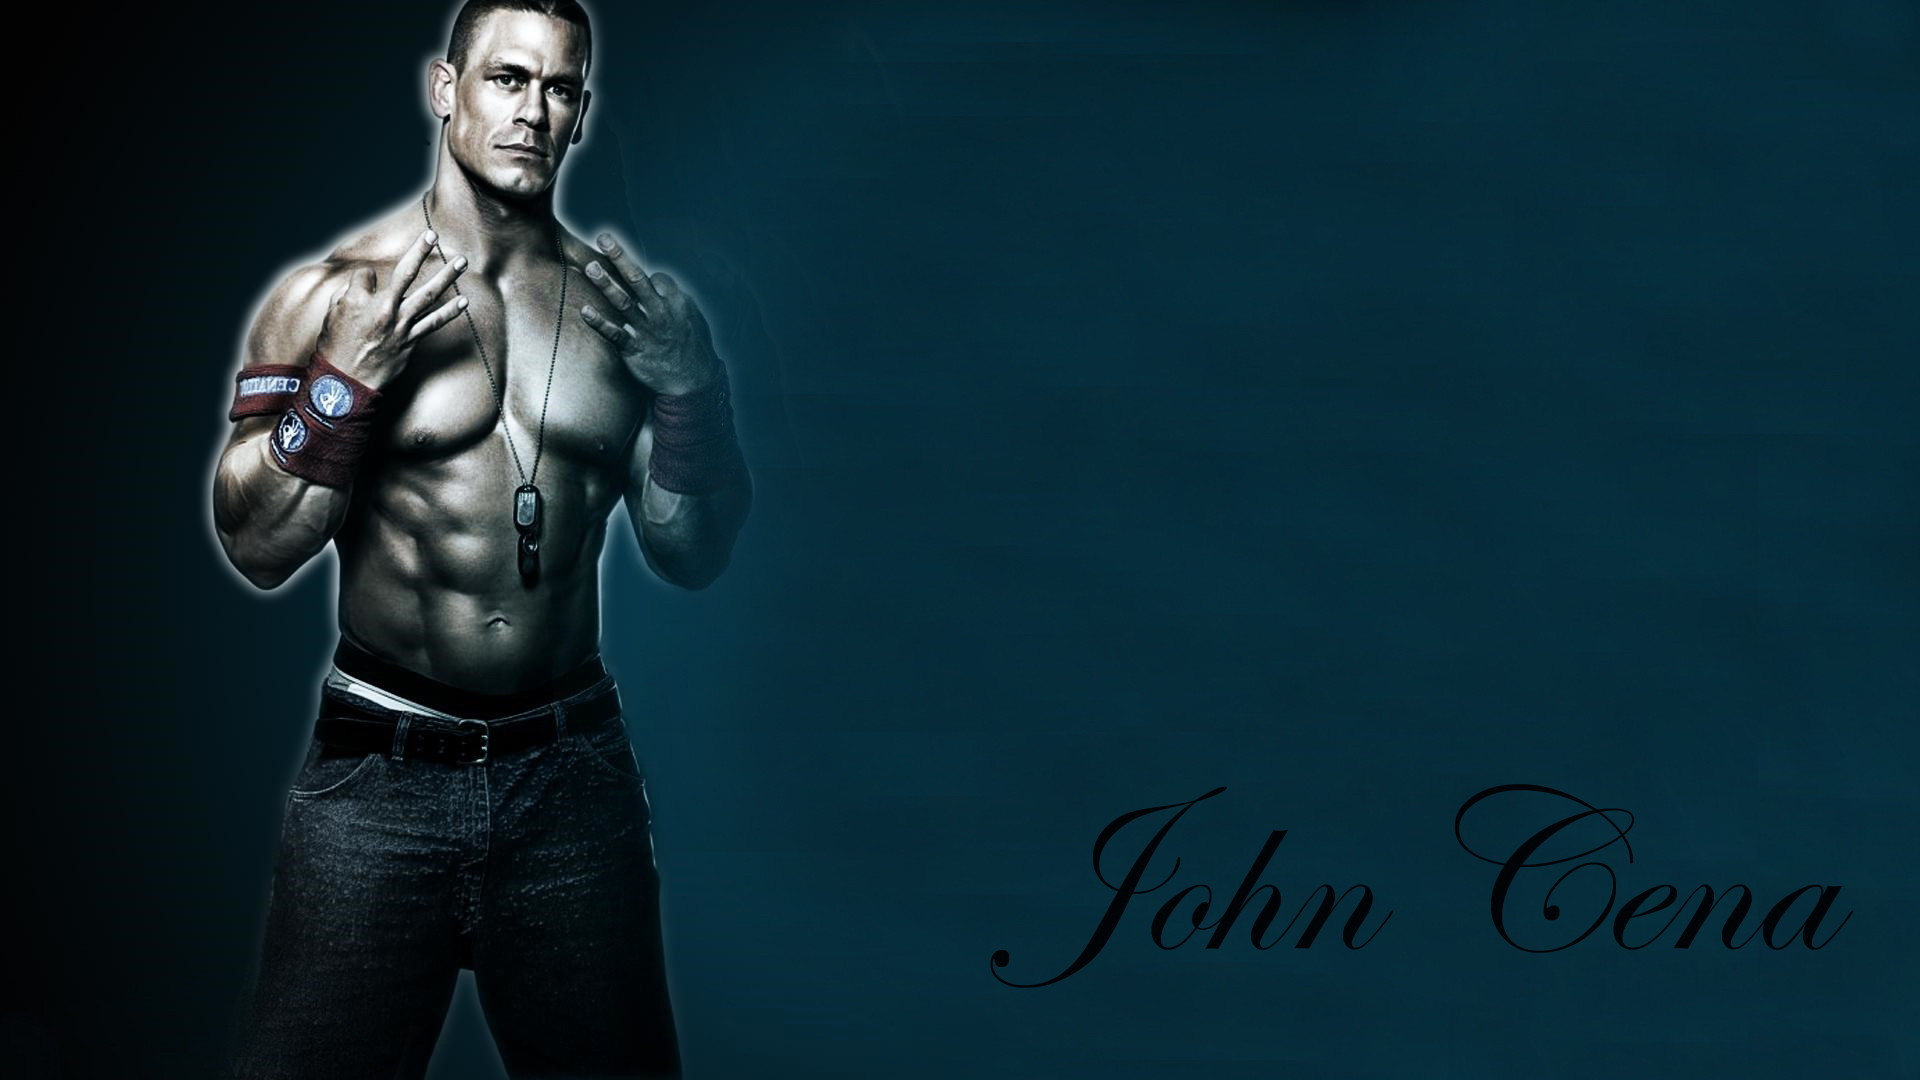 undefined John Cena Hd Images Wallpapers (65 Wallpapers .